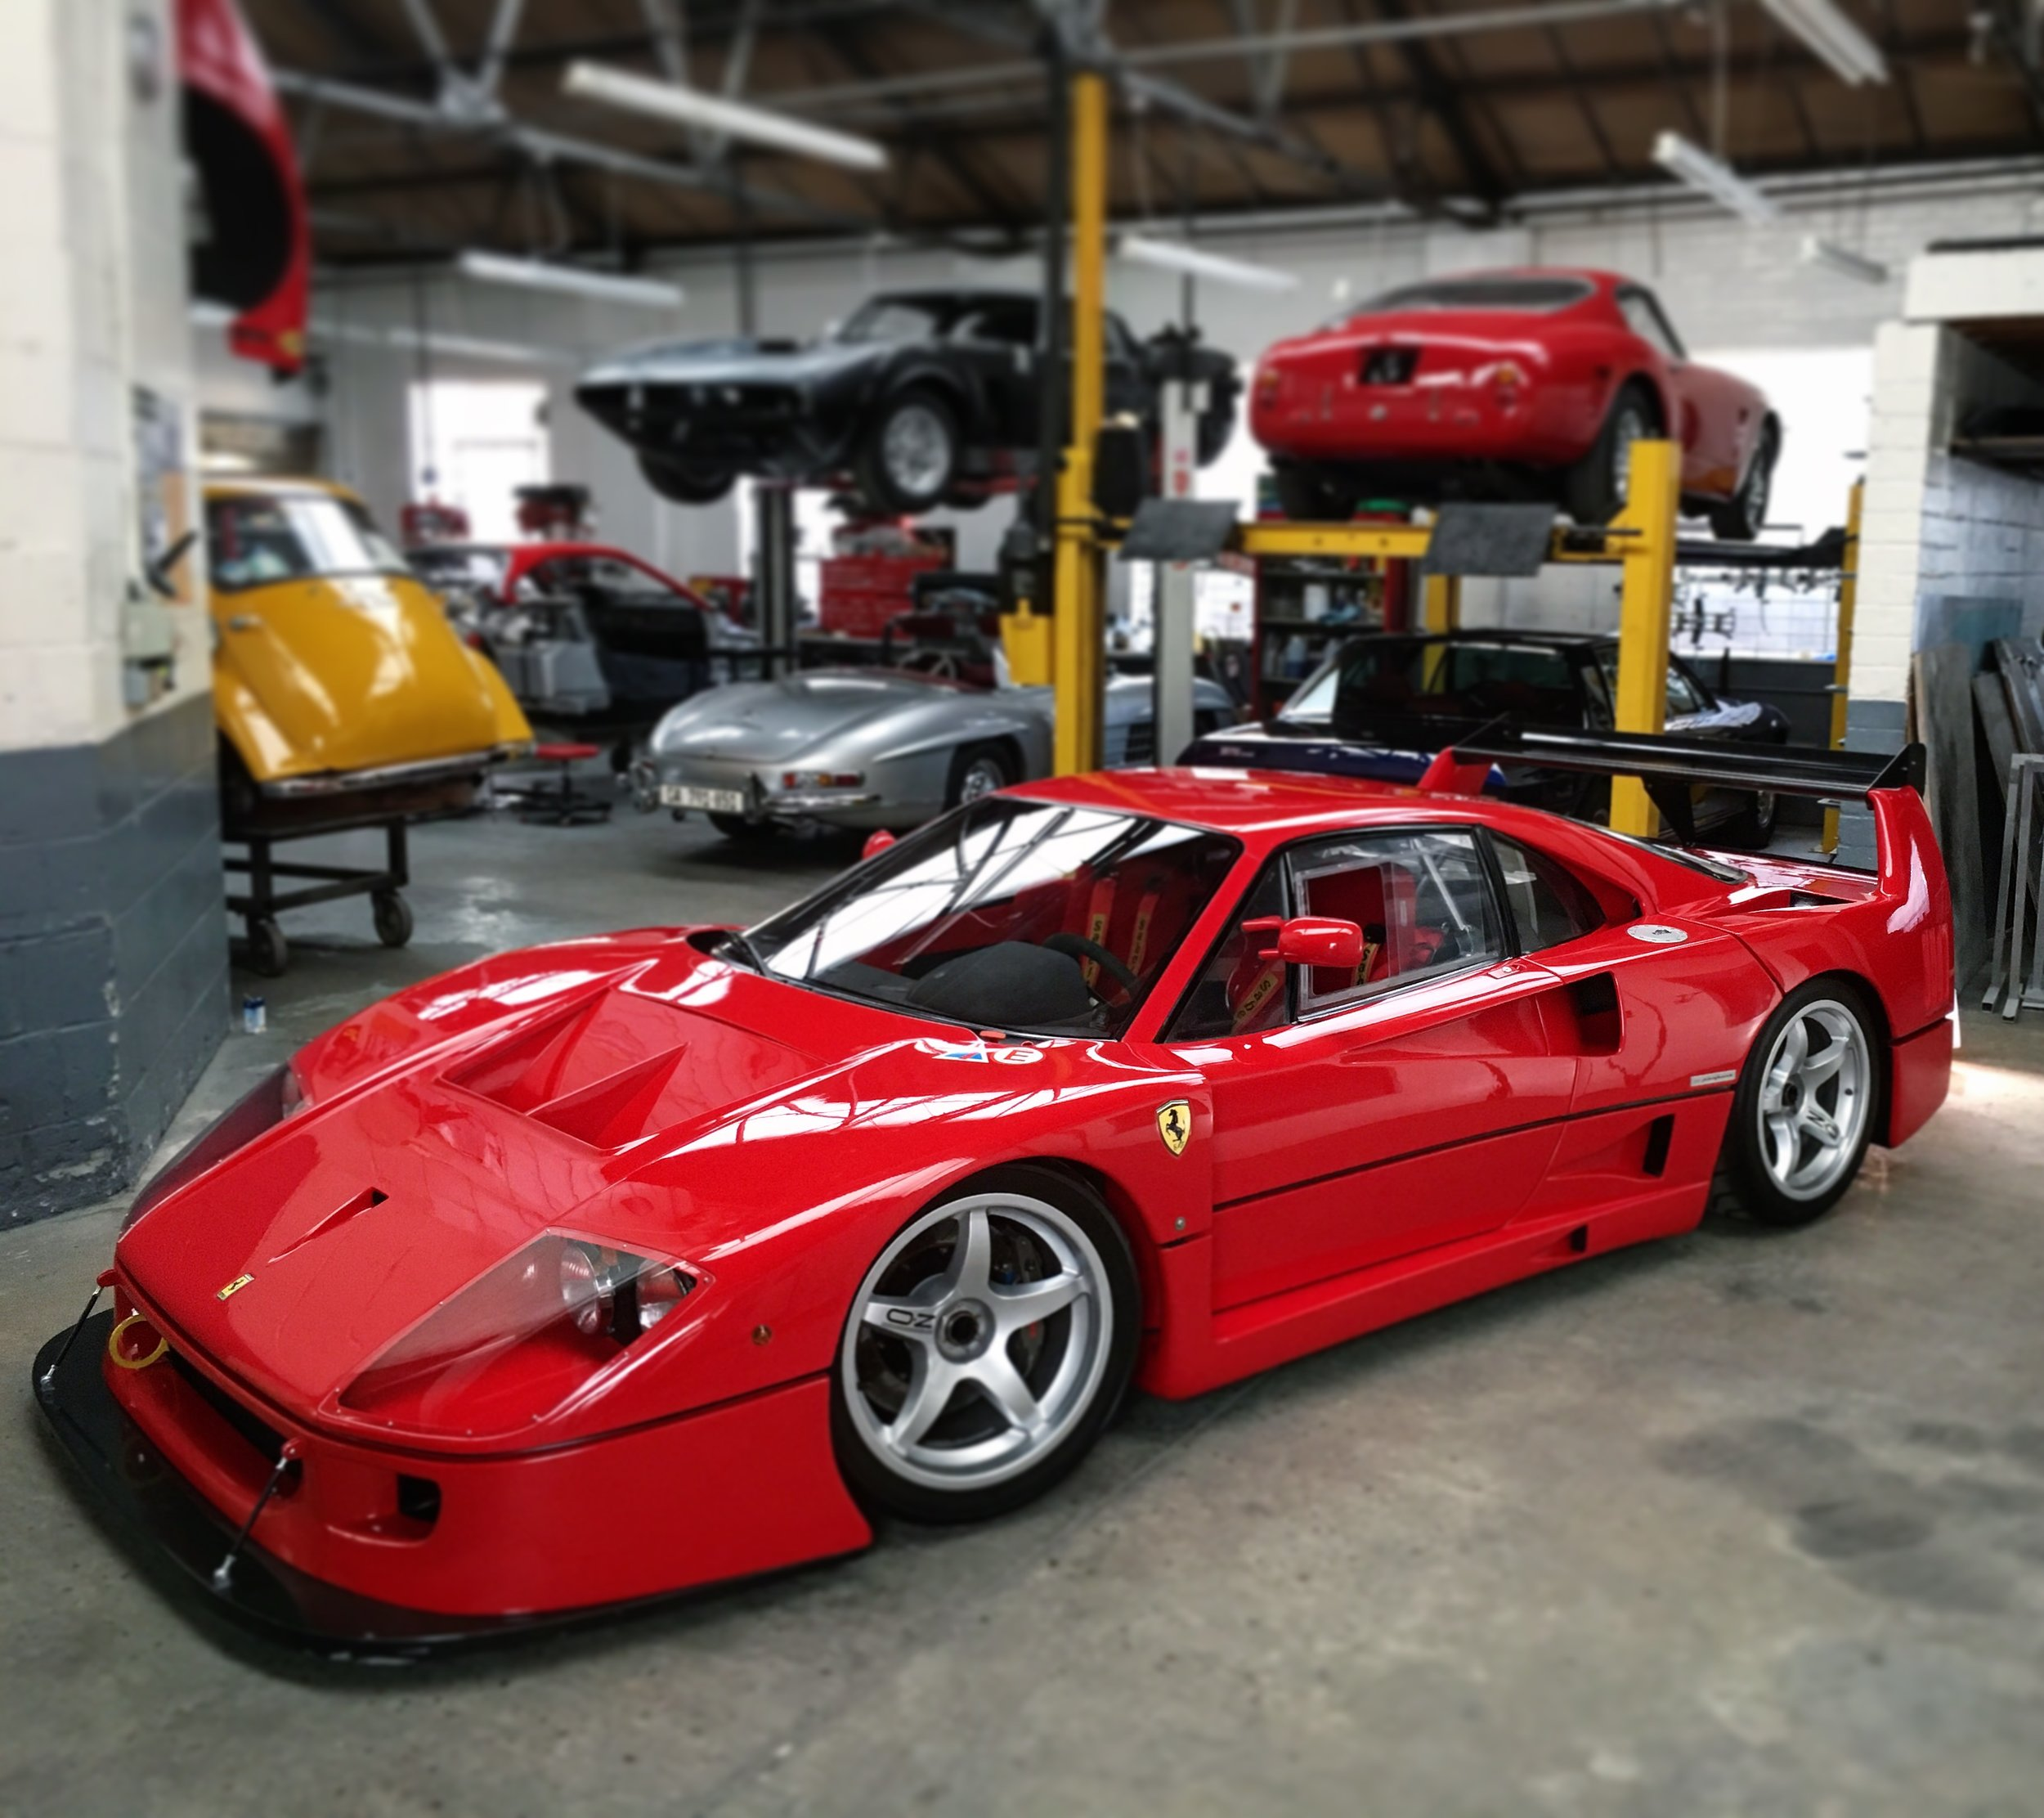 A Ferrari F40LM / GTE Freshly restored and with the perfect amount of spray paint that shows off just the right amount of carbon weave in the bodywork